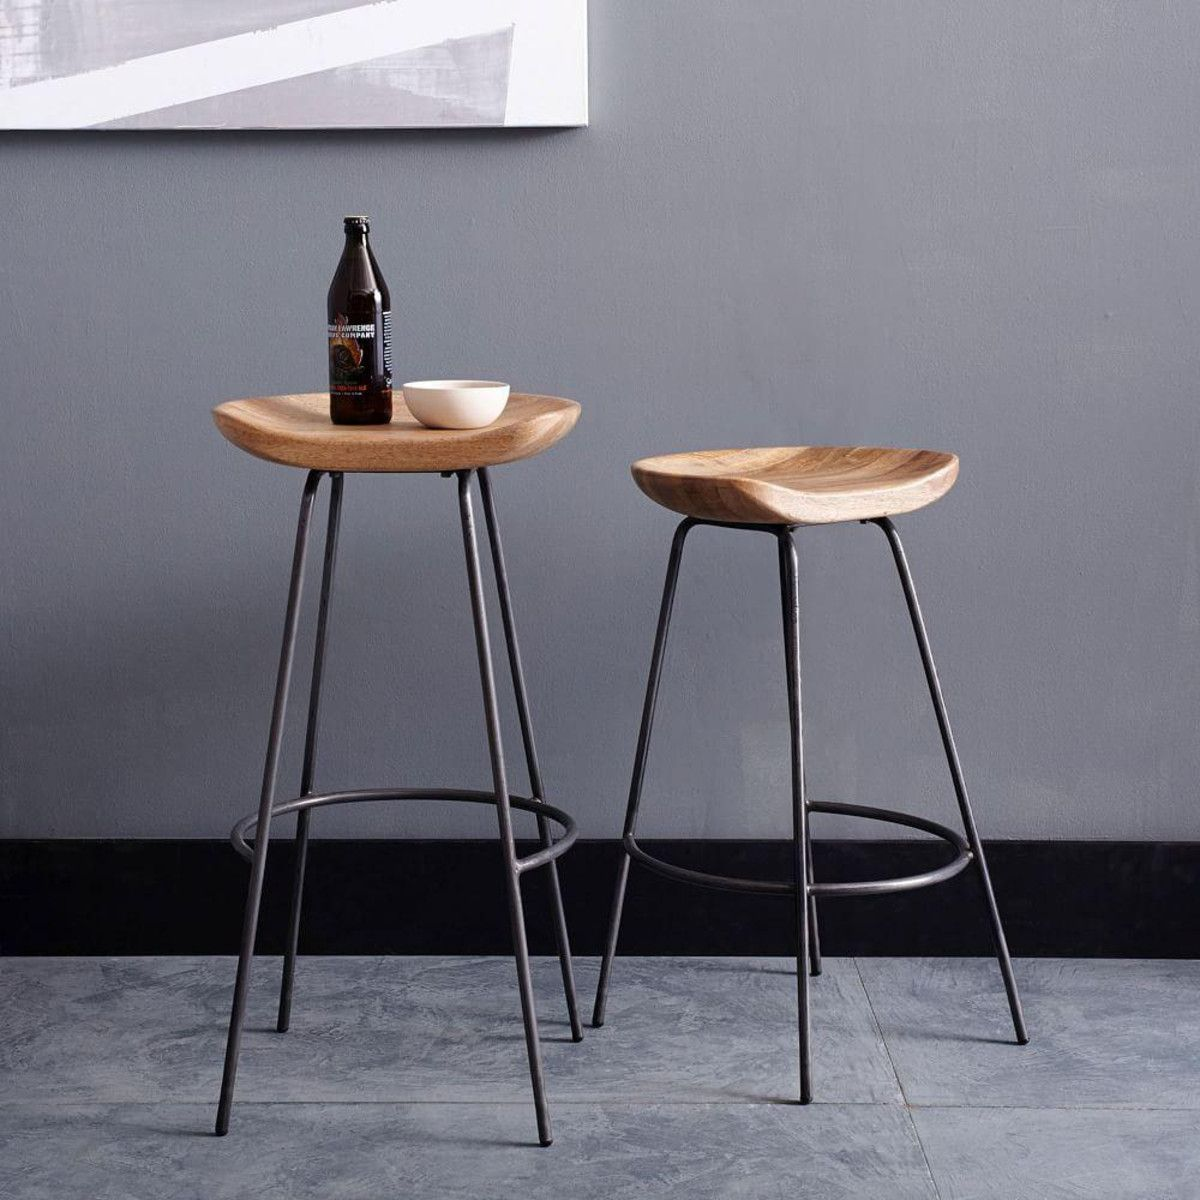 Our Alden Bar Stools Pair A Rustic Carved Wood Bucket Seat With An  Industrial Raw Steel